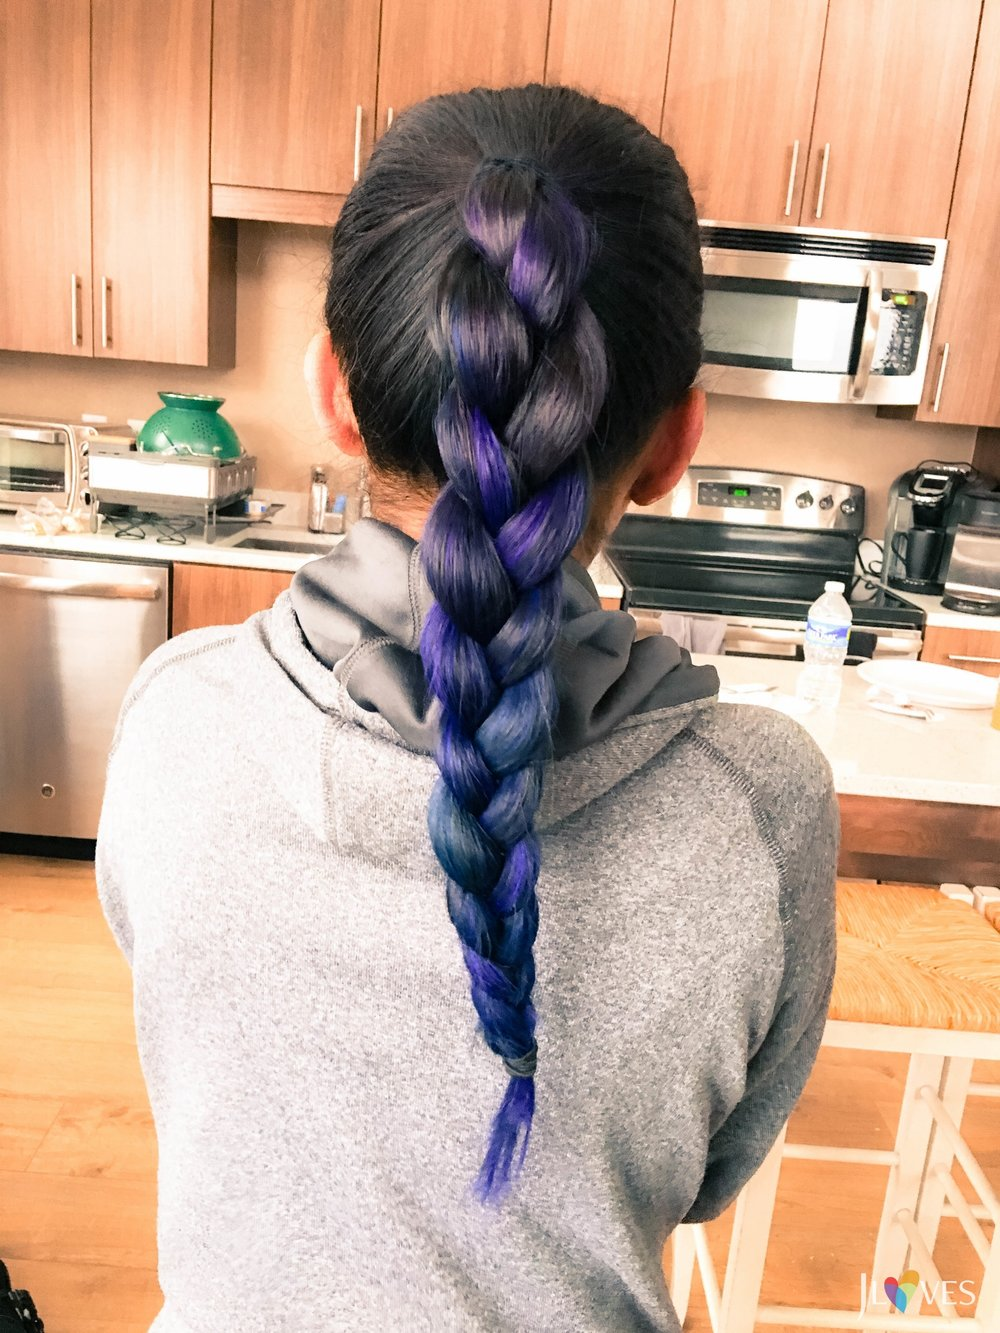 The ombré in a braid